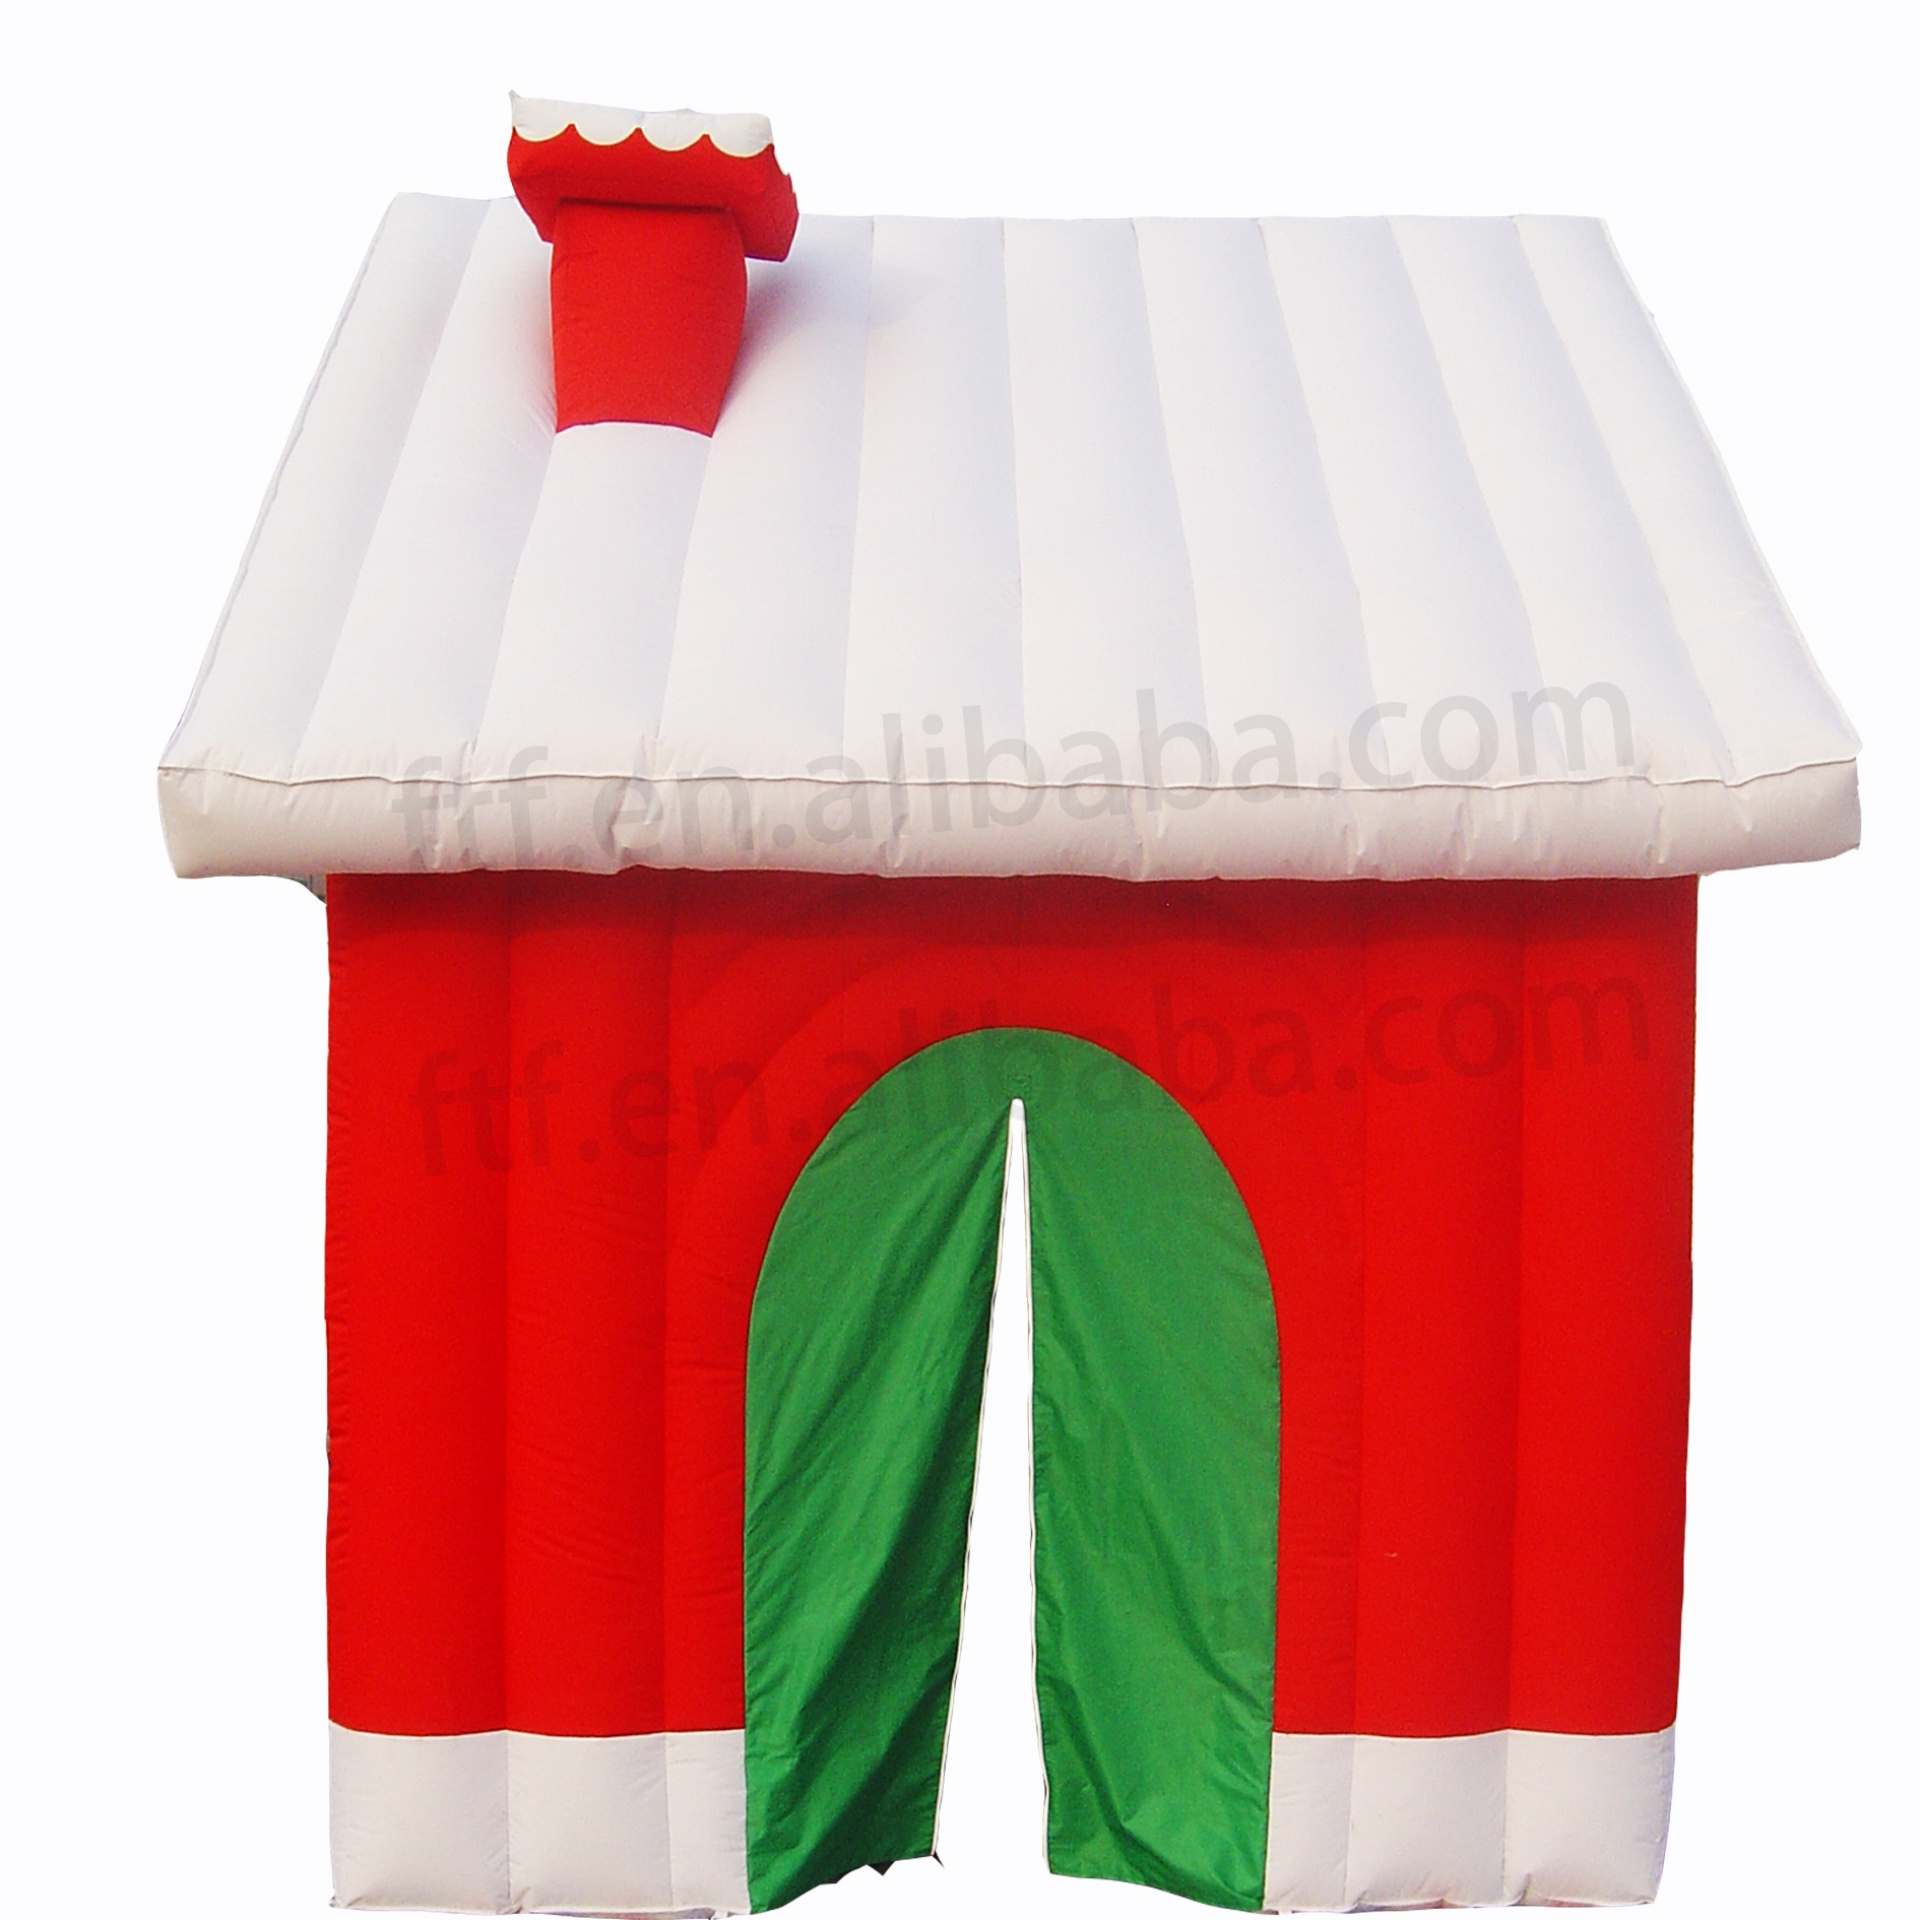 Custom inflatable Christmas house inflatable tent merry Christmas outdoor inflatable Christmas house